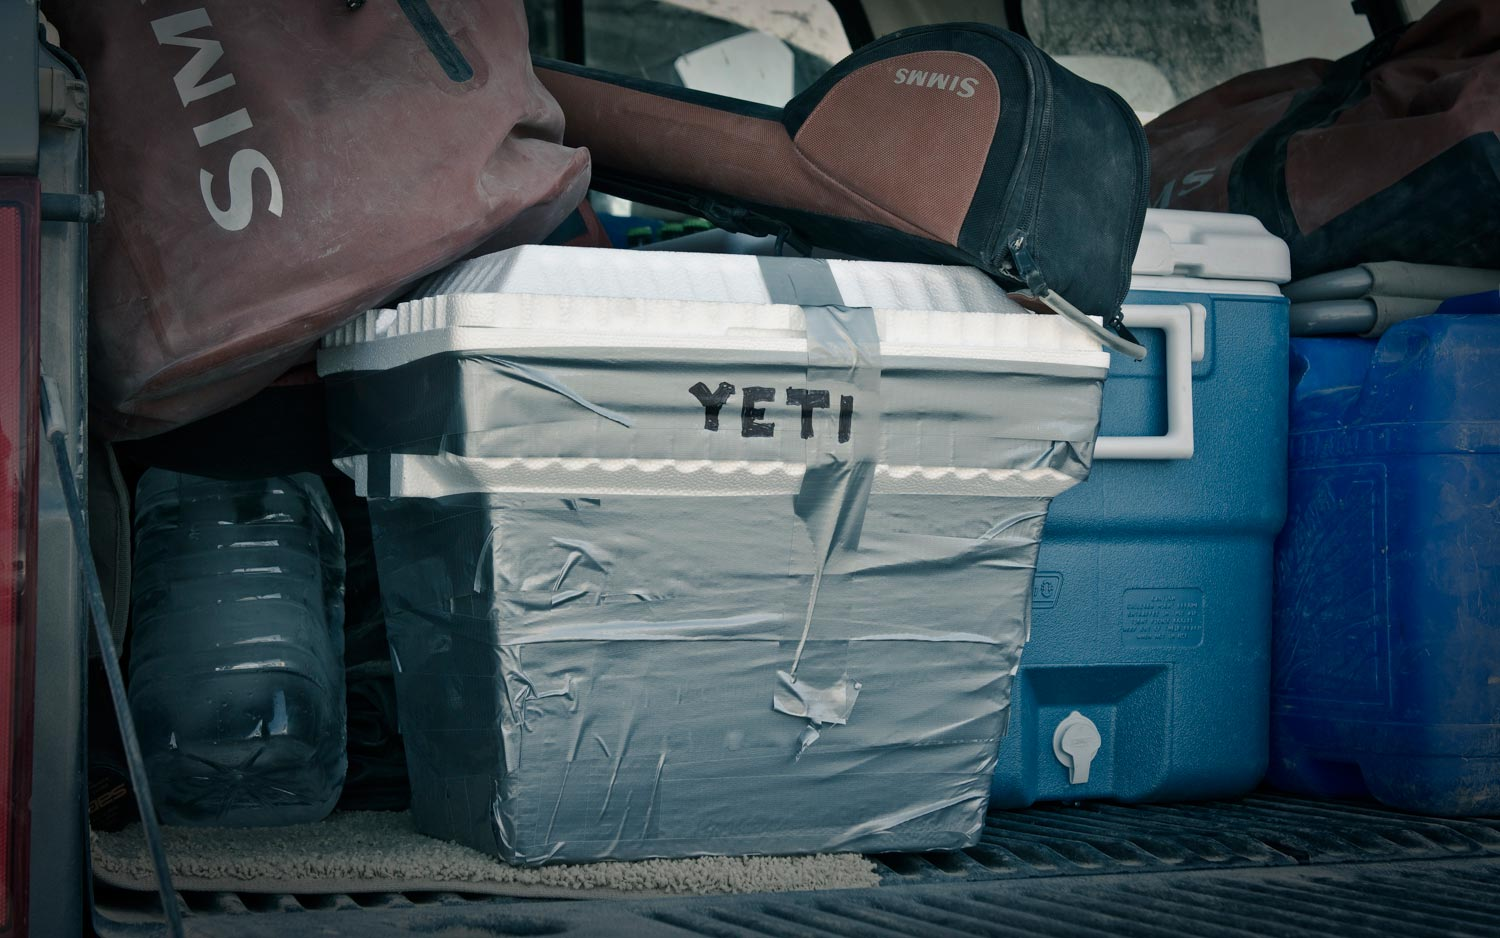 sunday classic the homemade yeti cooler fly fishing gink and